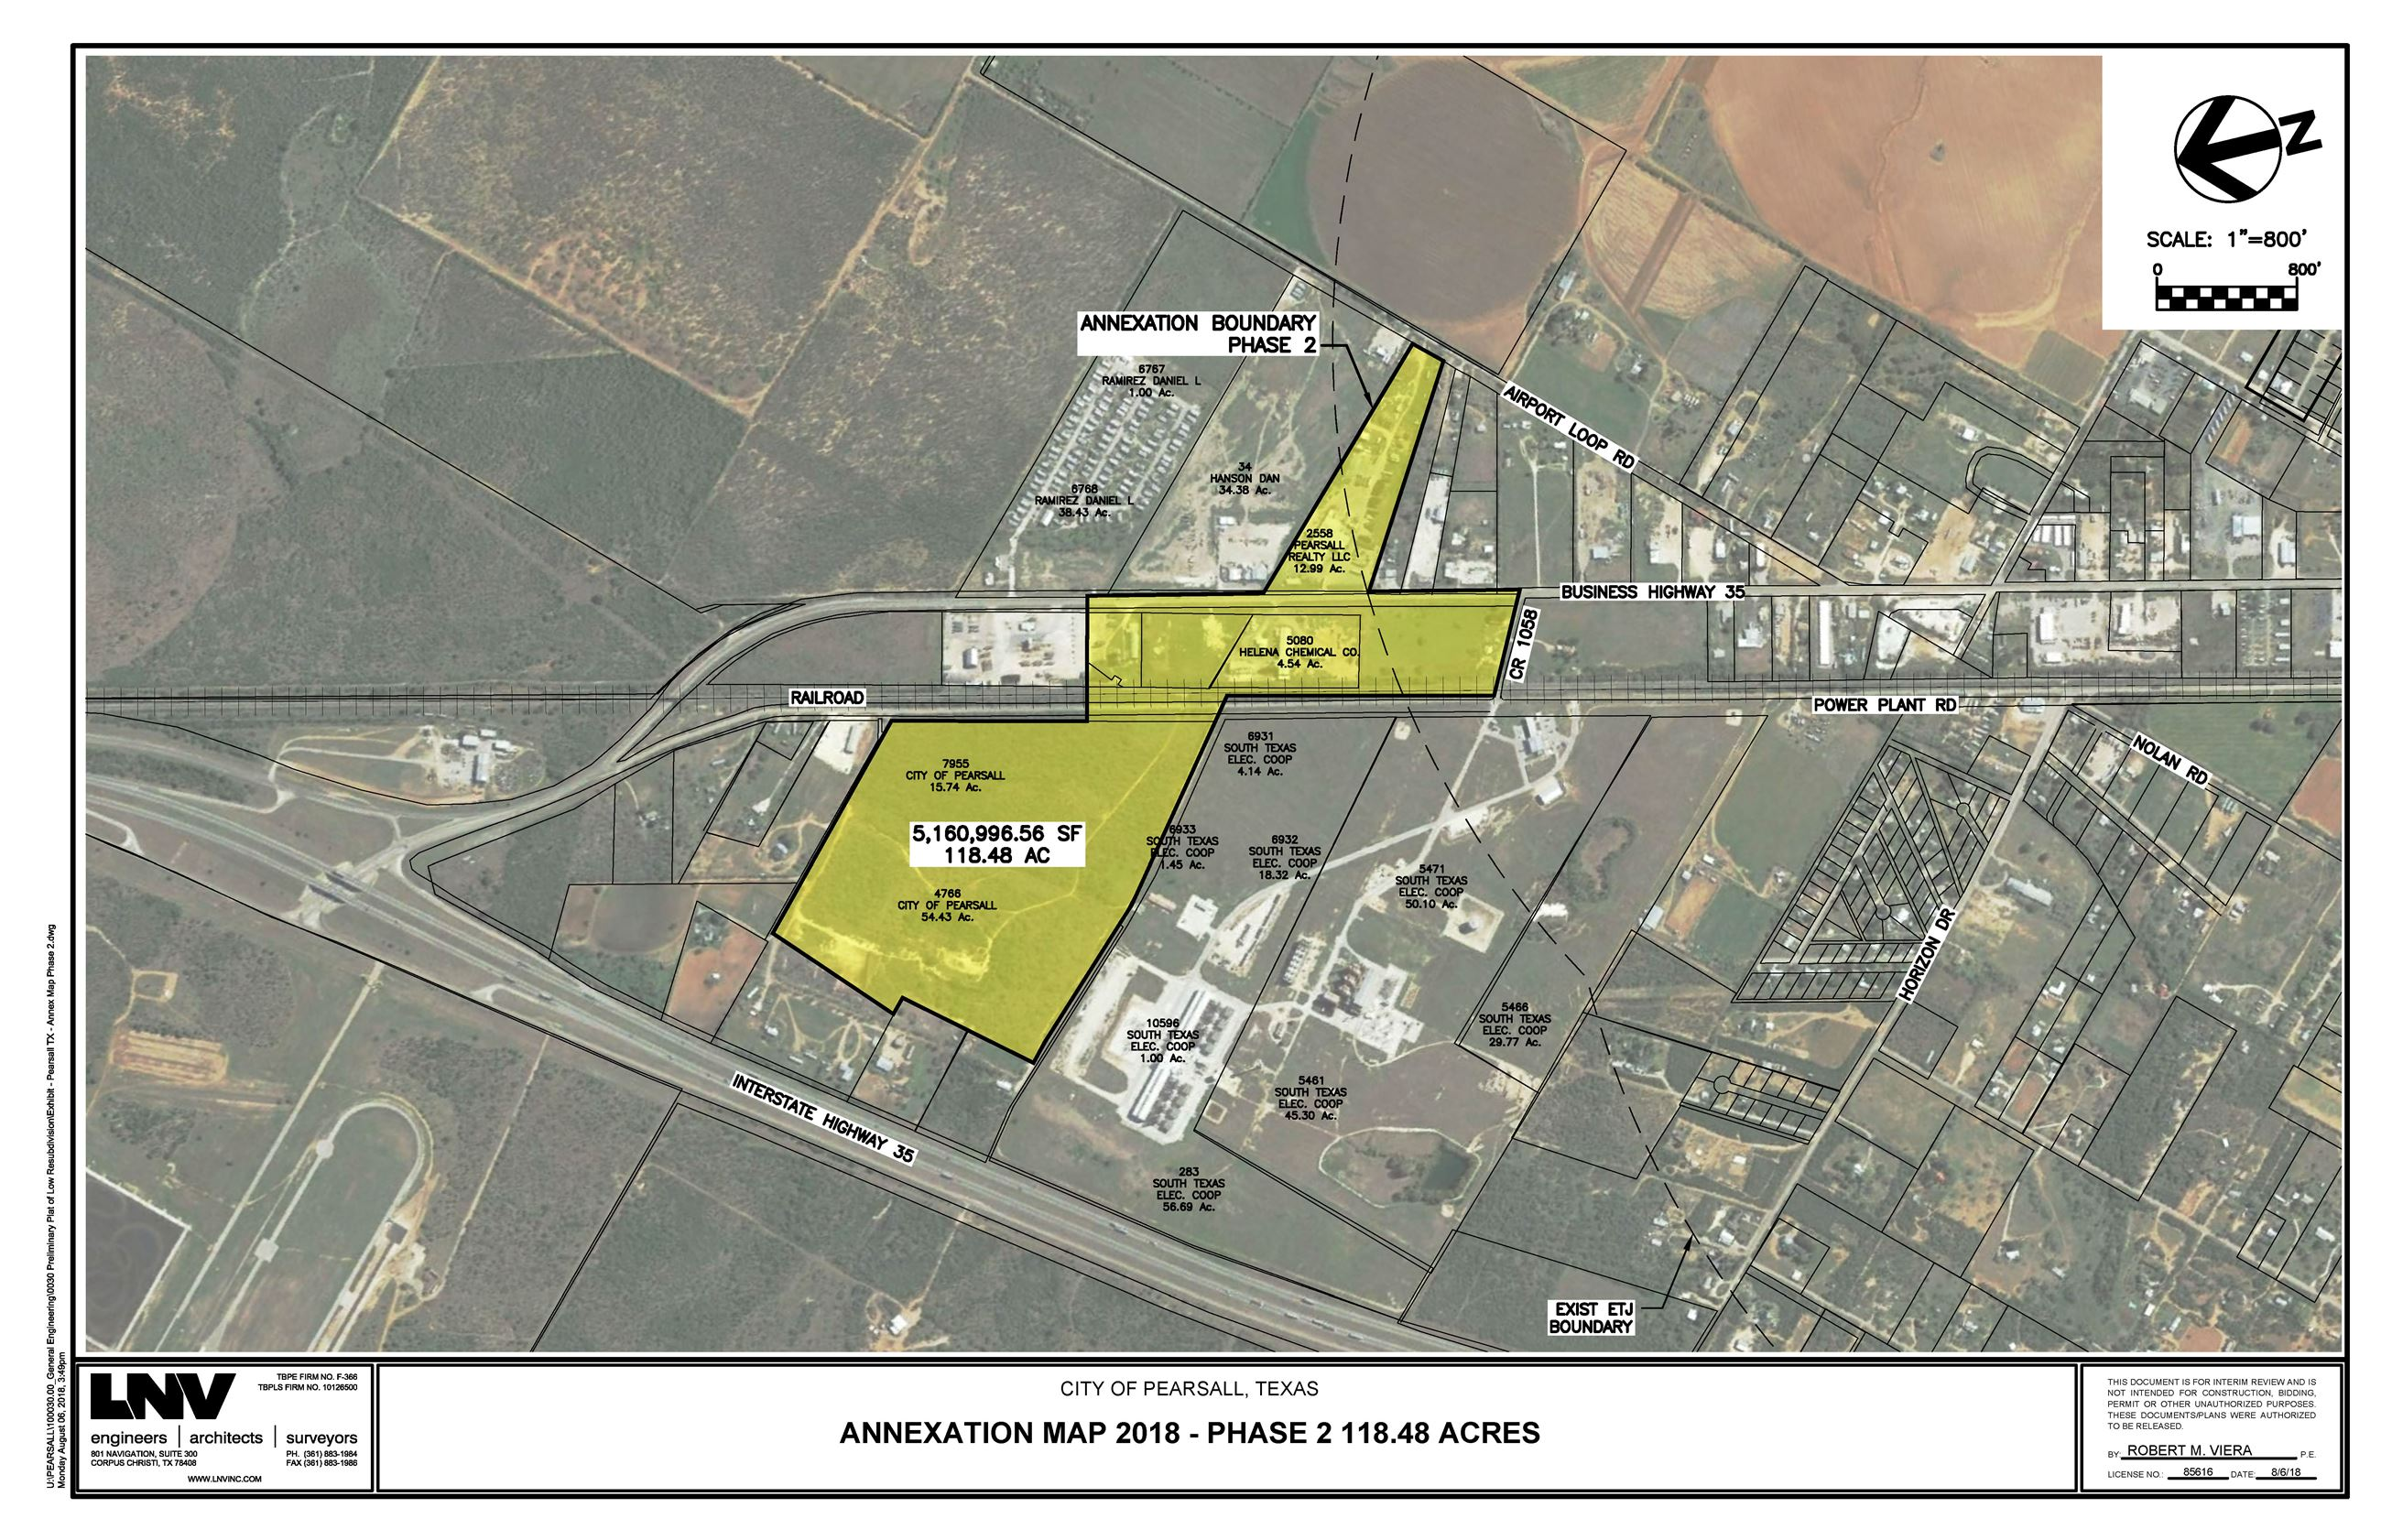 Exhibit - Pearsall TX - Annex Map Phase 2